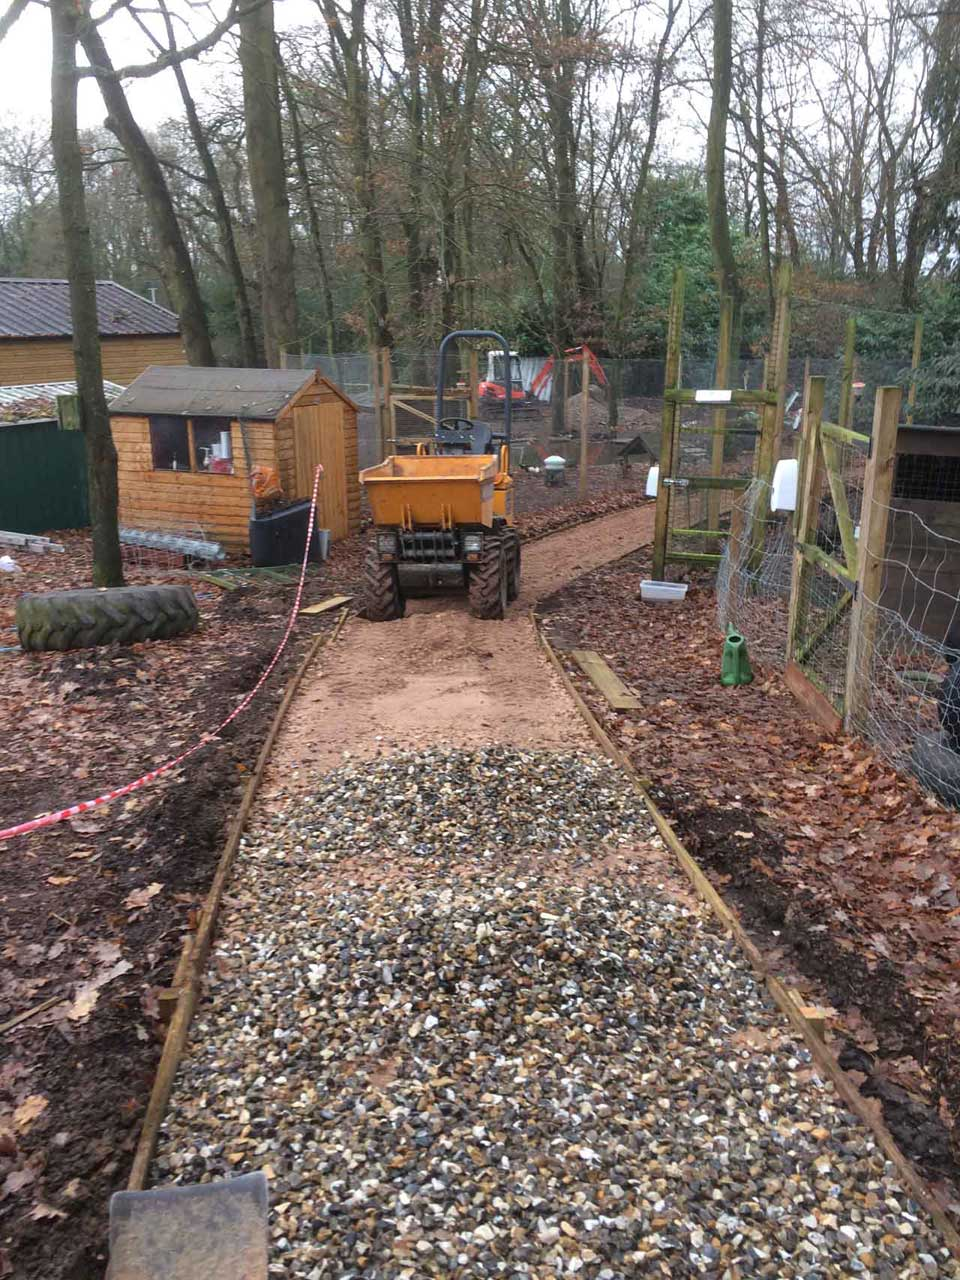 Landscaping in Wokingham at Holme Grange School Wokingham creating a new forest walk